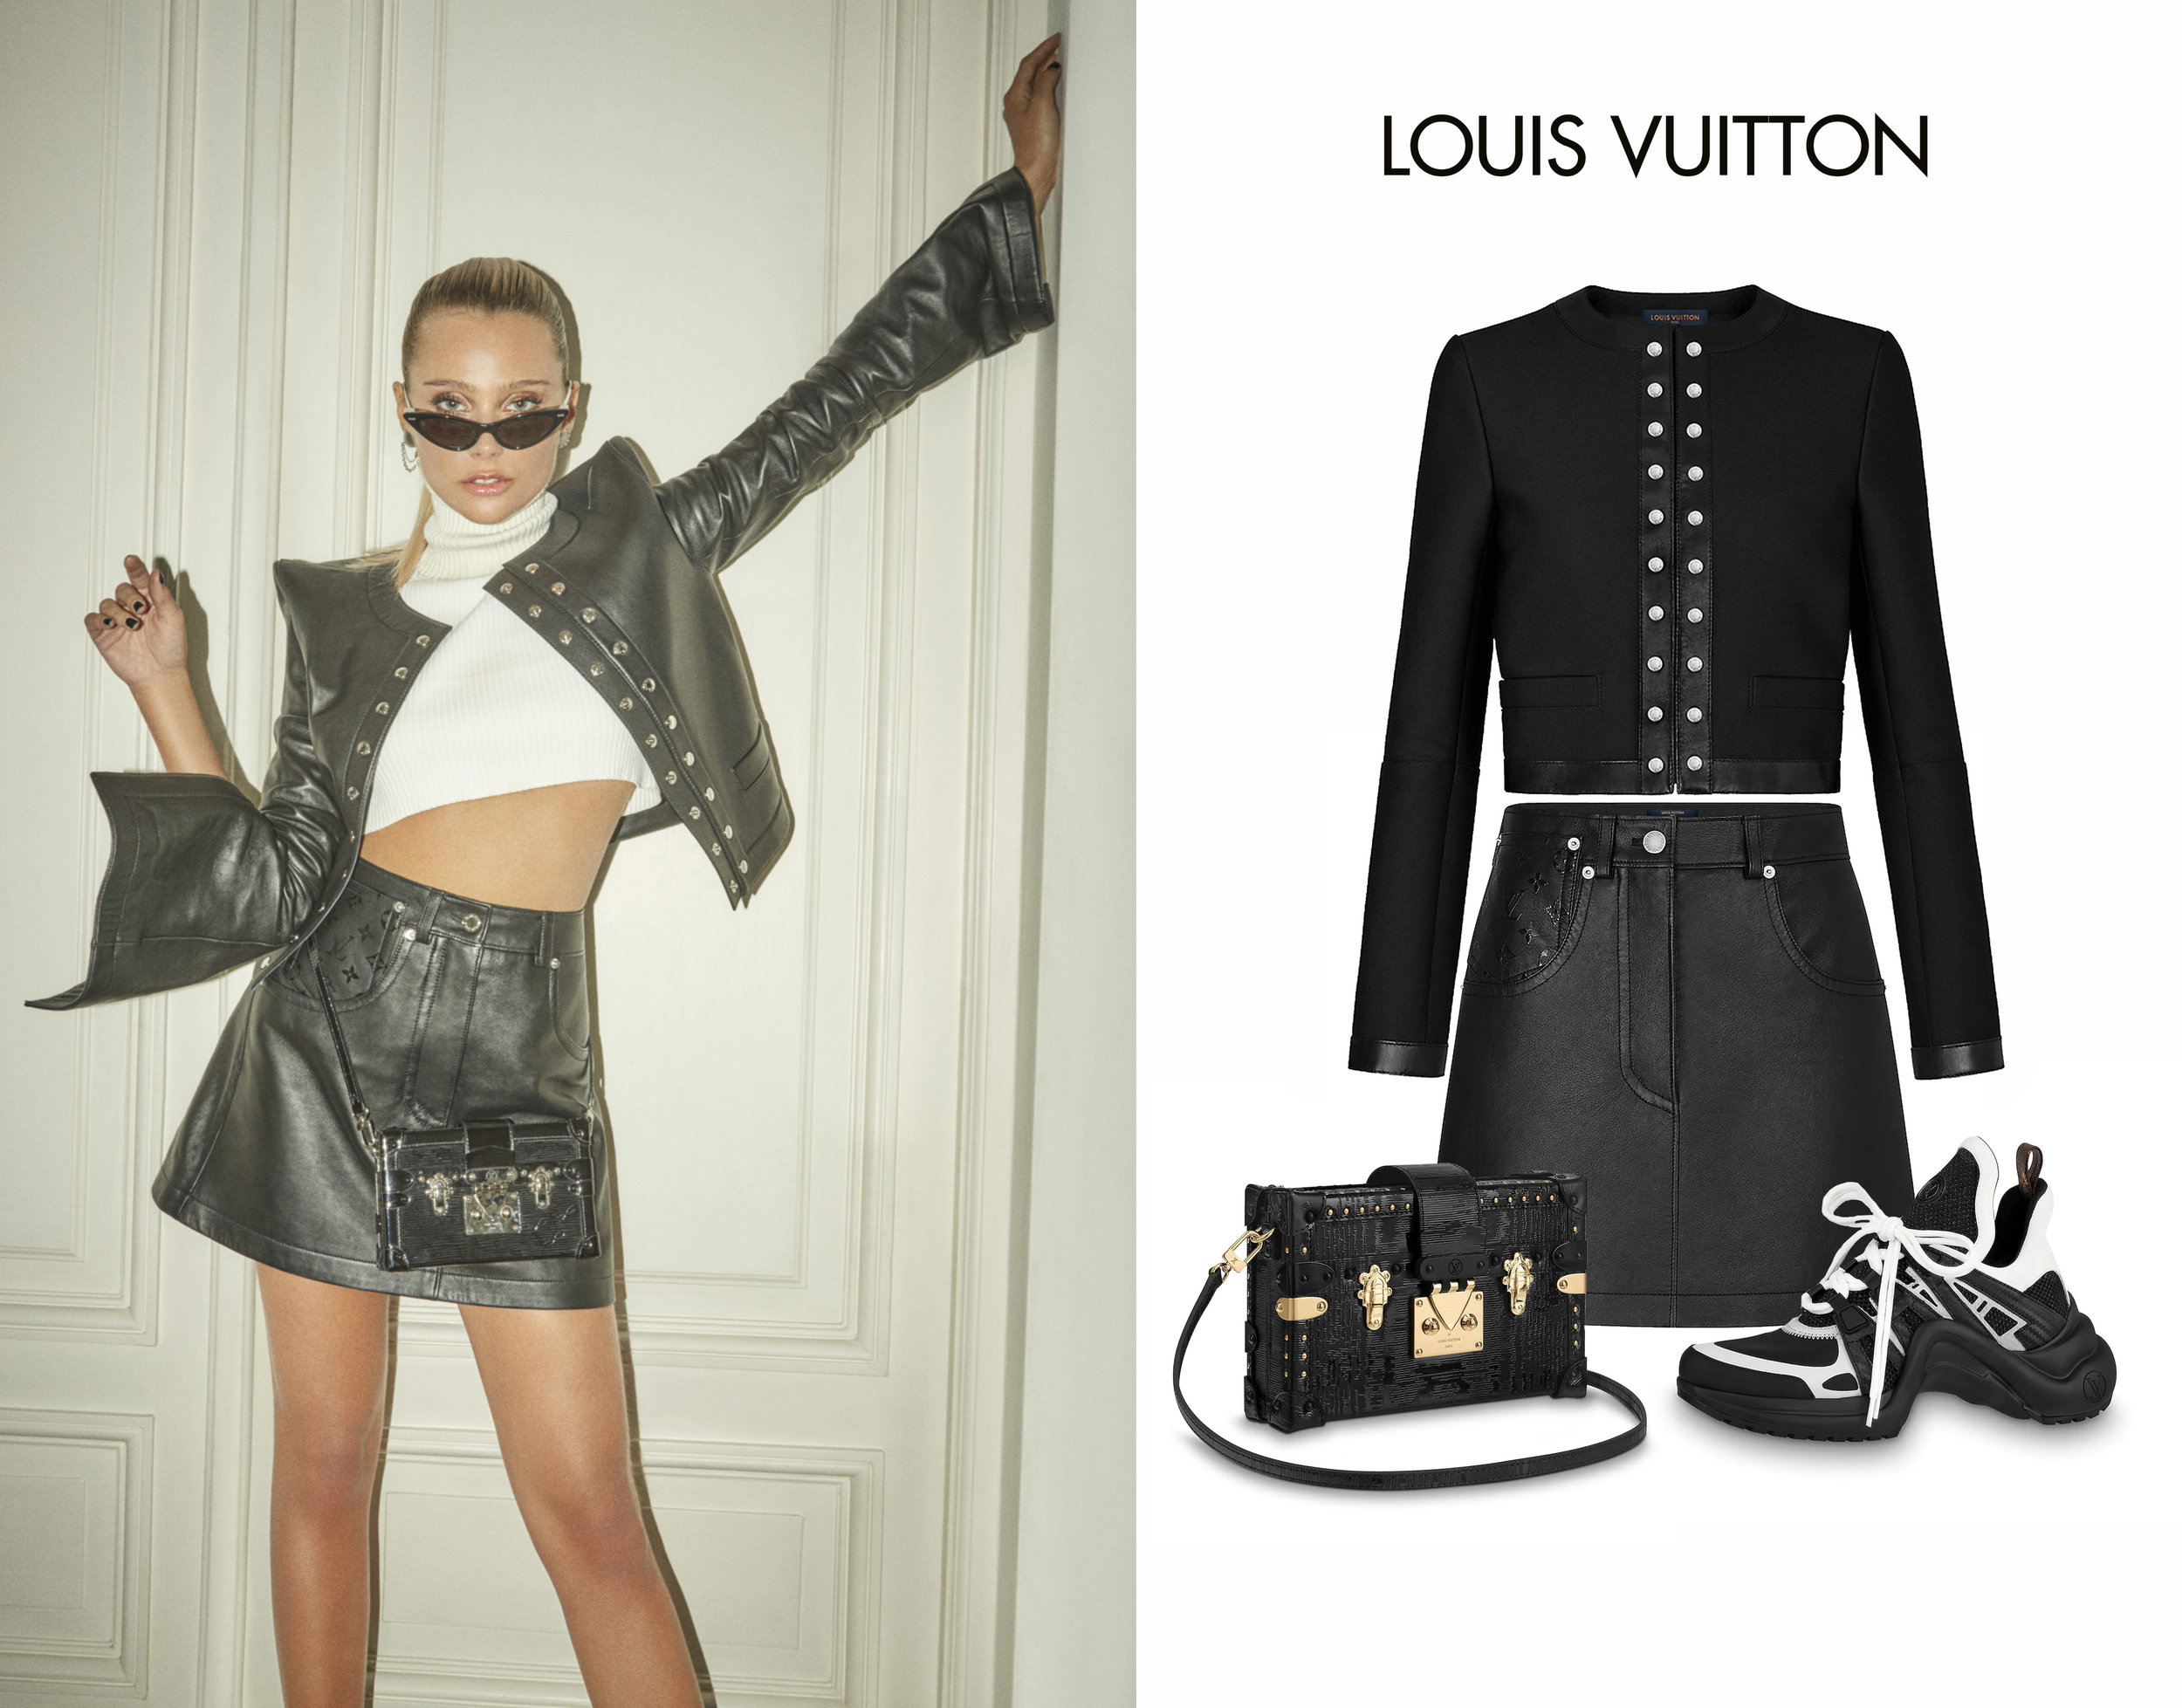 Valentina_Zenere_Louis_Vuitton_Argentina_Snap_Button_Jacket_Leather_Skirt_Archlight_Sneakers_Bag.jpg